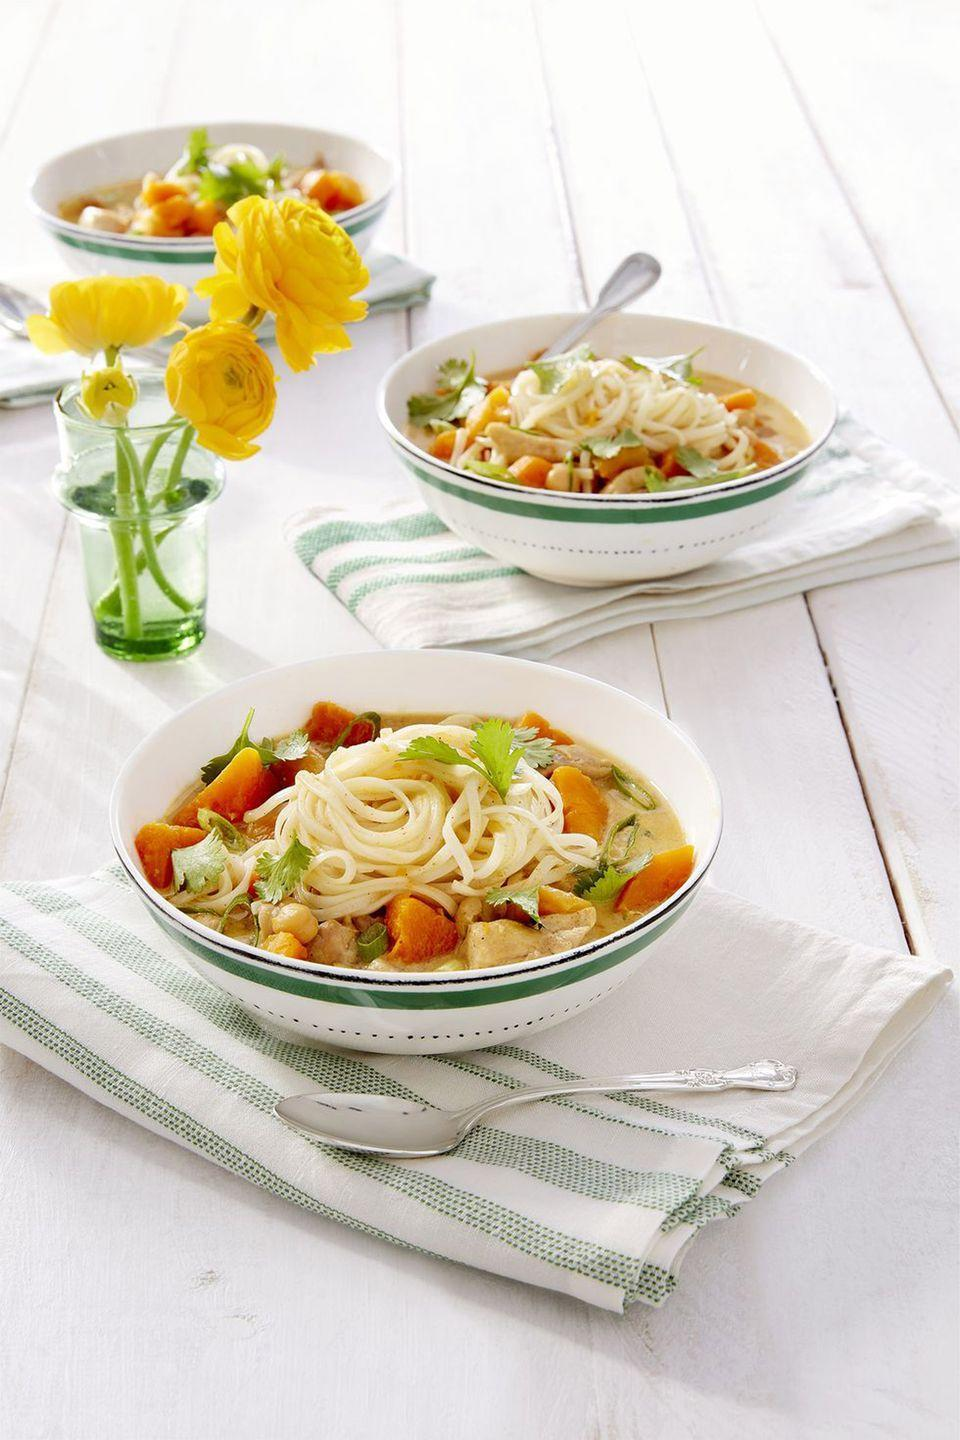 "<p>Dried apricots, chickpeas, and tender bites of butternut squash make for a filling lunch or dinner dish.</p><p><strong><a href=""https://www.countryliving.com/food-drinks/a16571156/butternut-squash-apricot-chicken-noodle-curry-recipe/"" rel=""nofollow noopener"" target=""_blank"" data-ylk=""slk:Get the recipe"" class=""link rapid-noclick-resp"">Get the recipe</a>.</strong></p><p><strong><a class=""link rapid-noclick-resp"" href=""https://www.amazon.com/Tramontina-80131-035DS-Enameled-5-5-Quart/dp/B077BHPZGC/?tag=syn-yahoo-20&ascsubtag=%5Bartid%7C10050.g.3569%5Bsrc%7Cyahoo-us"" rel=""nofollow noopener"" target=""_blank"" data-ylk=""slk:SHOP DUTCH OVENS"">SHOP DUTCH OVENS</a><br></strong></p>"